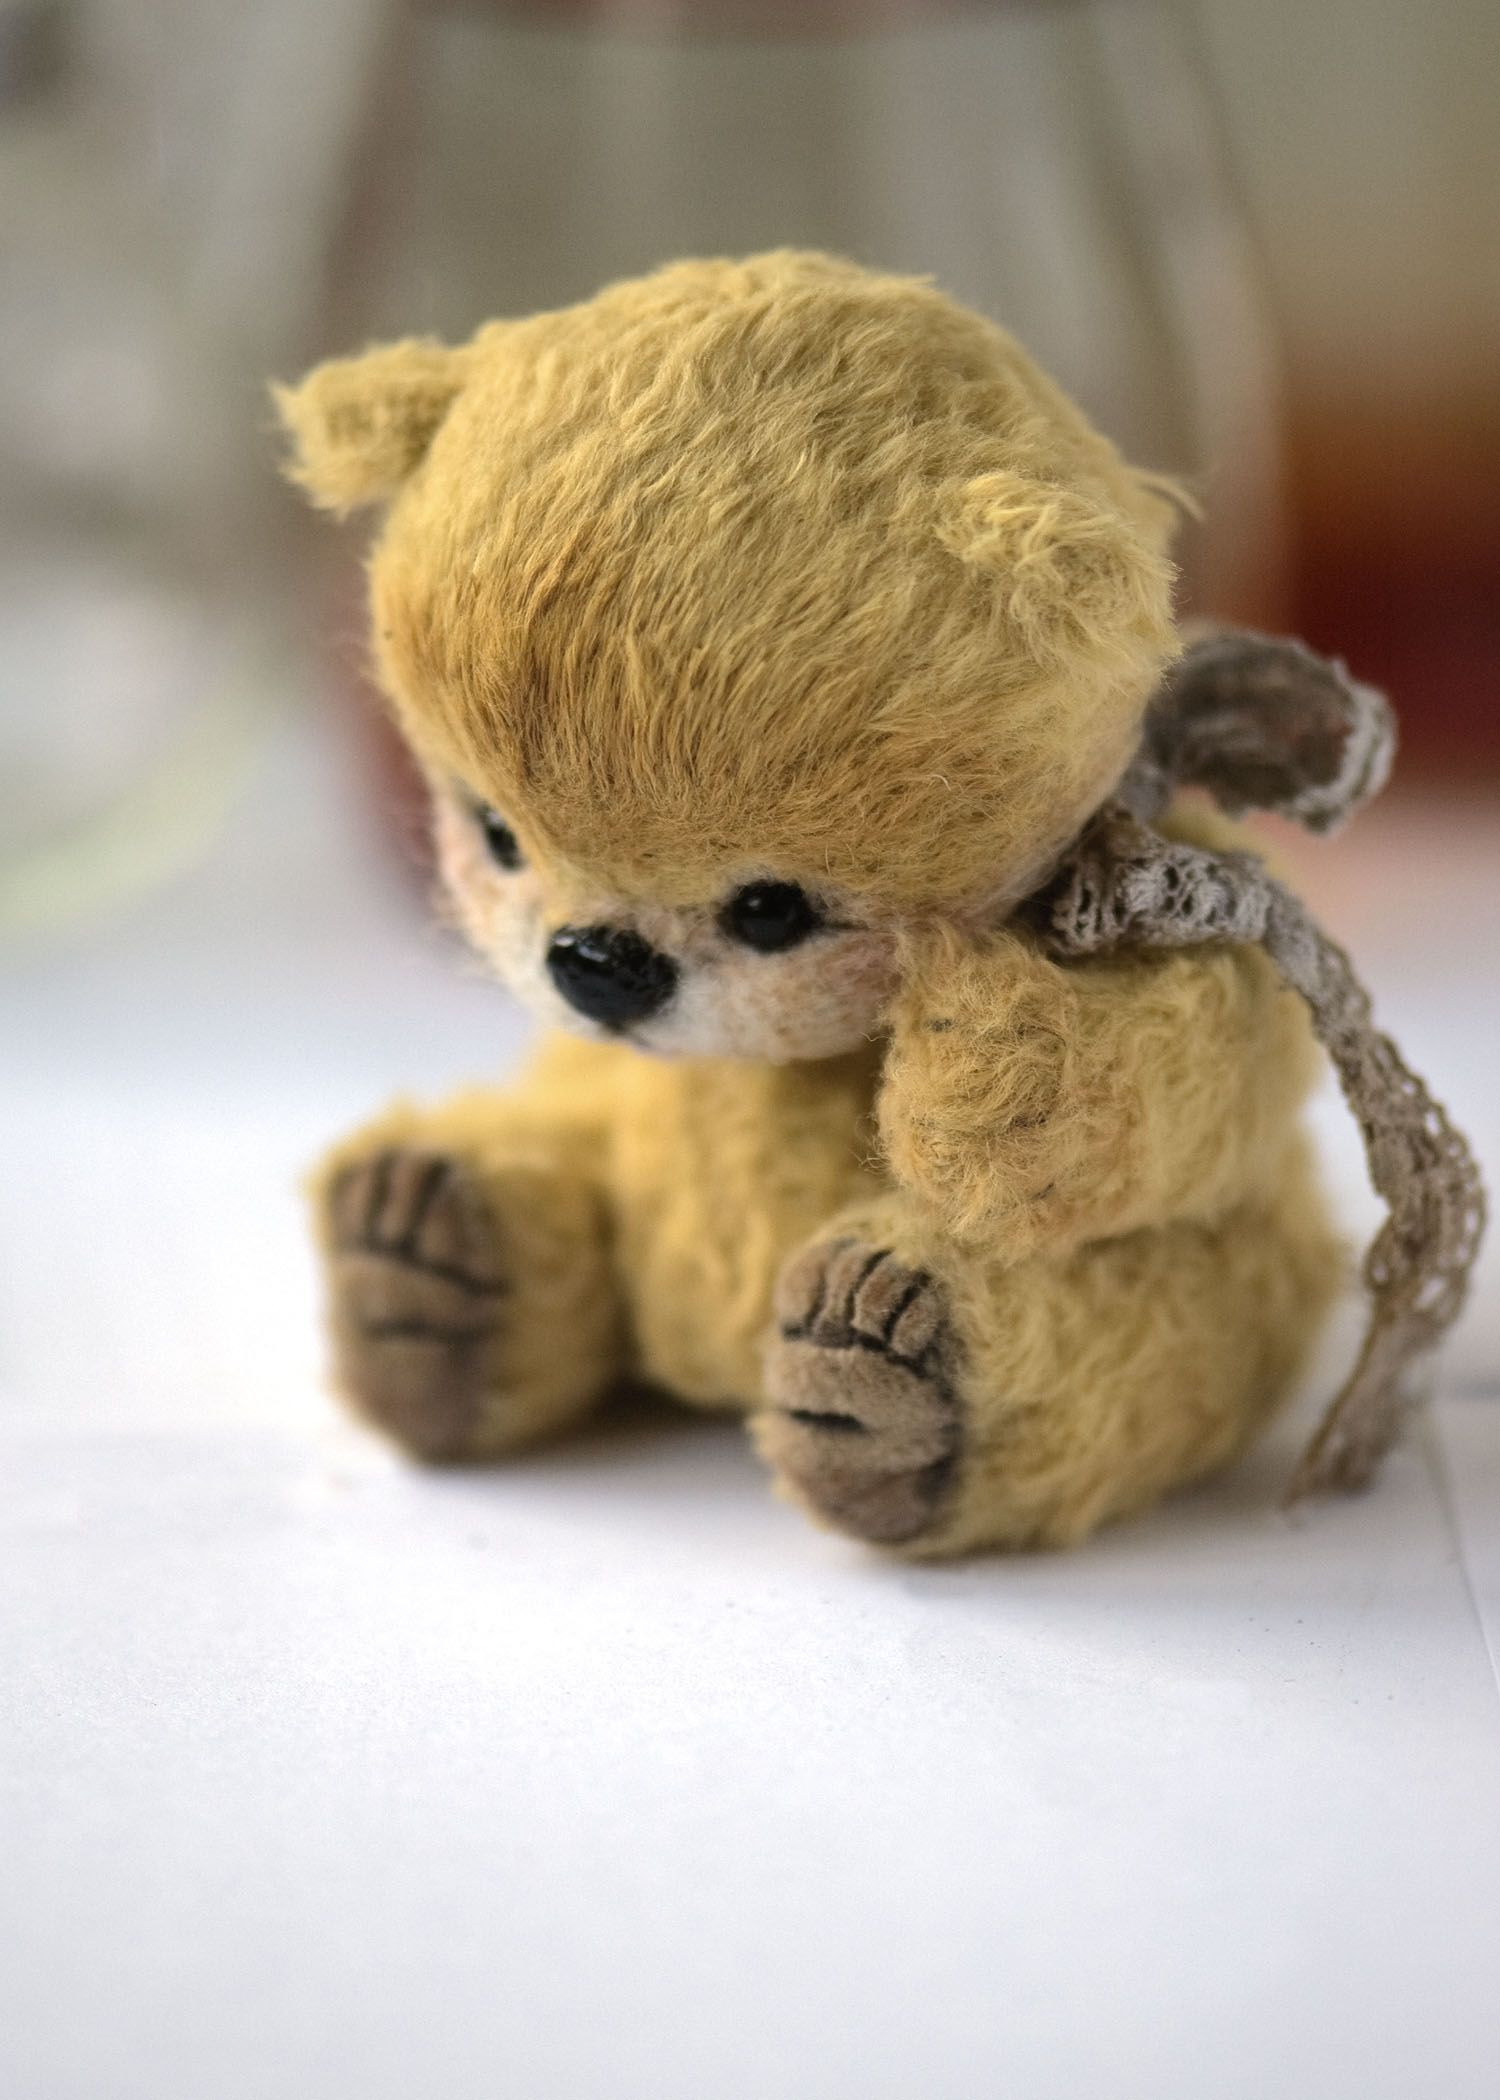 Cutest Teddy Bear Ever :o)